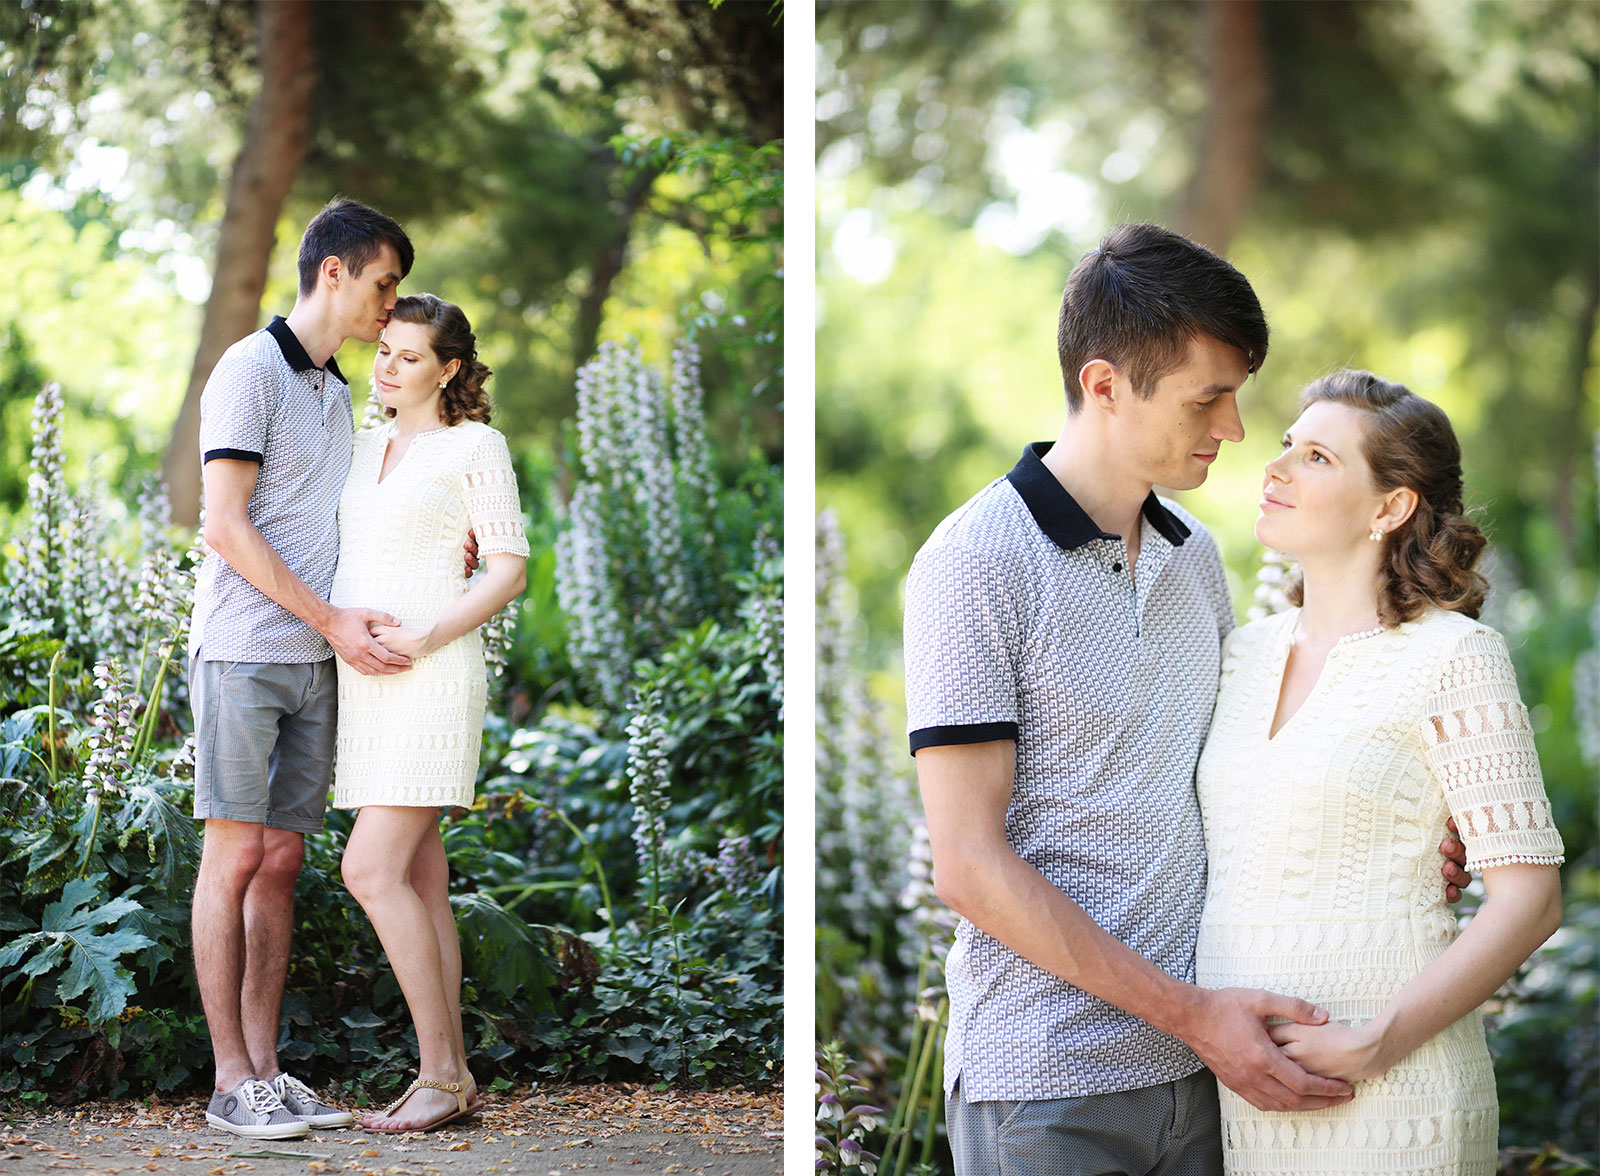 Pregnancy photo sessions Barcelona